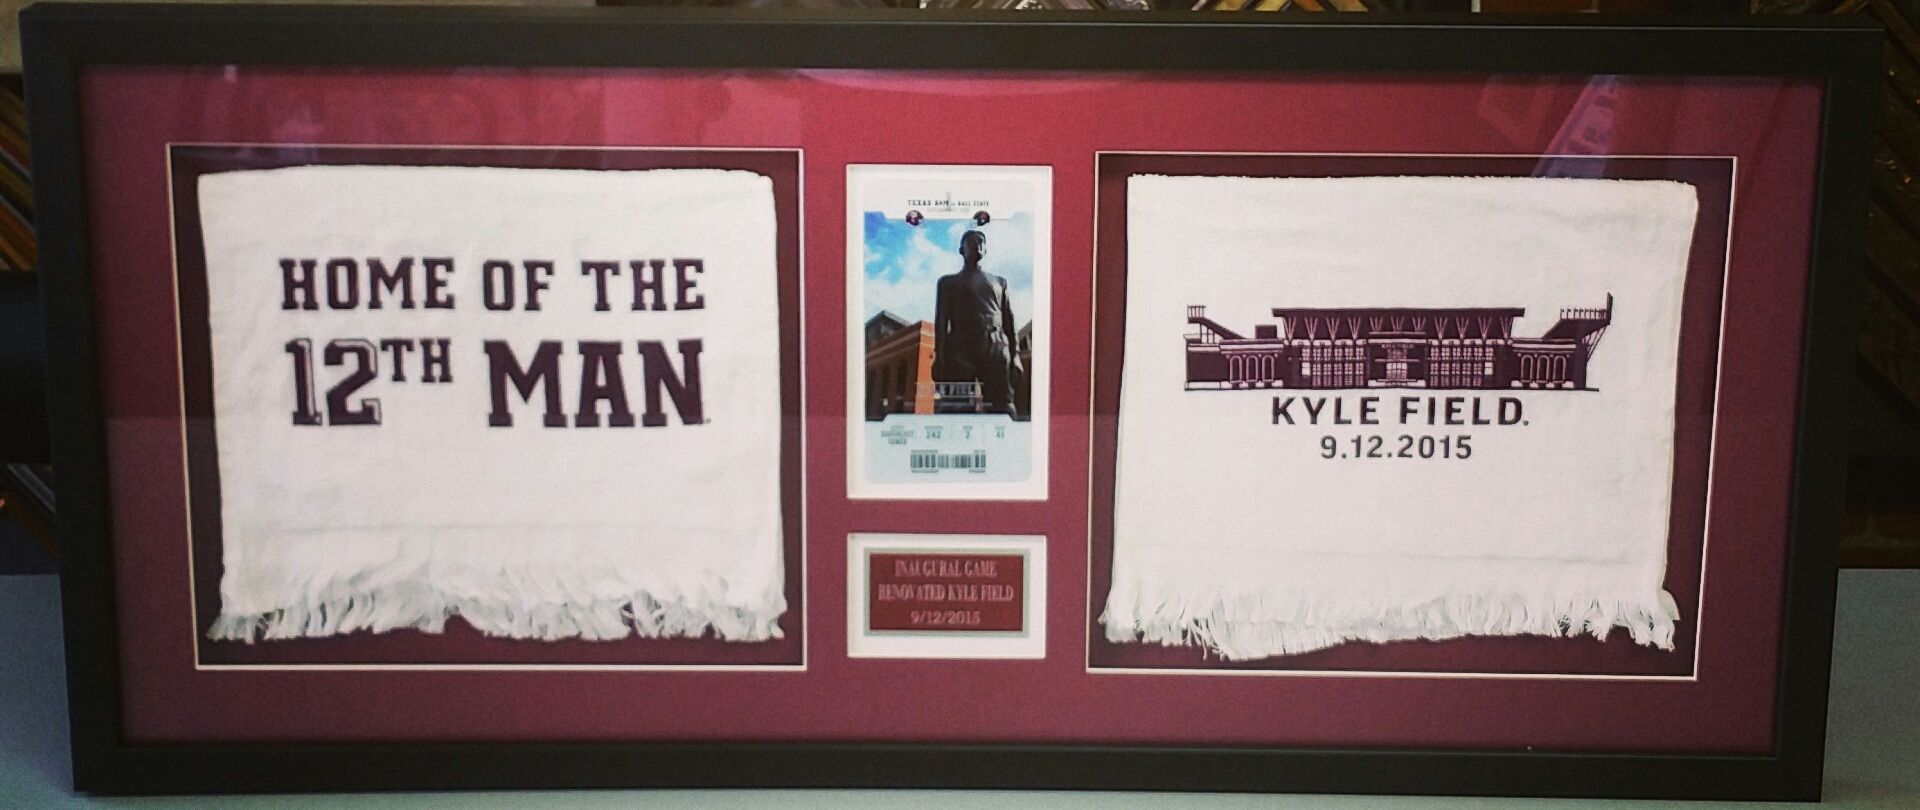 Tamu shadowbox featuring two towels a ticket and a custom name shadowbox featuring two towels a ticket and a custom name plate come see us for all your sports framing needs in denver jeuxipadfo Images